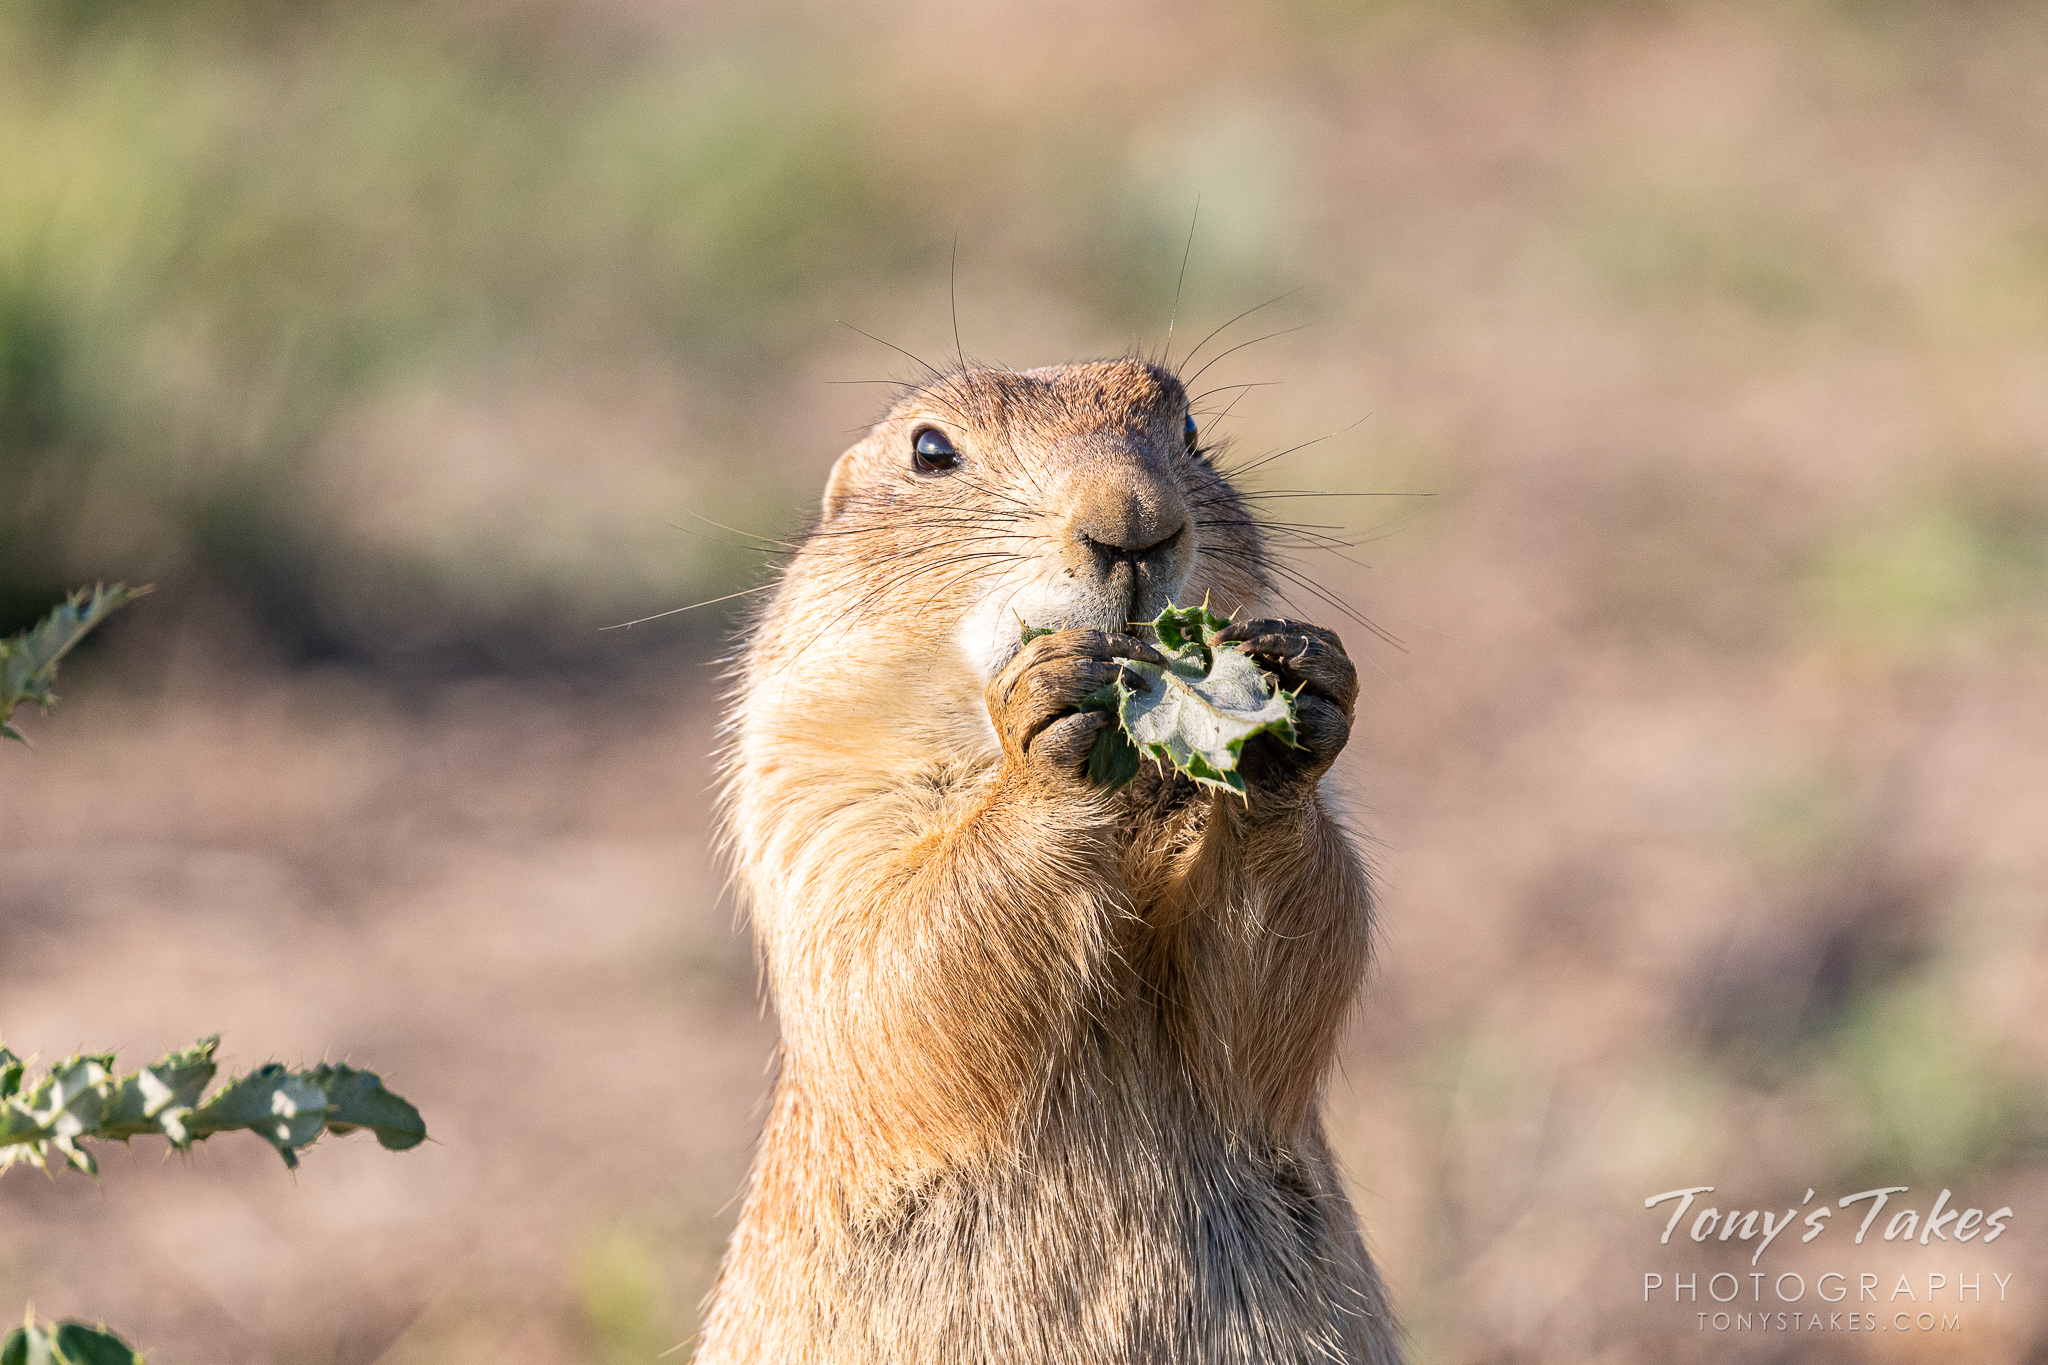 A prairie dog enjoys a snack in Fort Collins, Colorado. (© Tony's Takes)